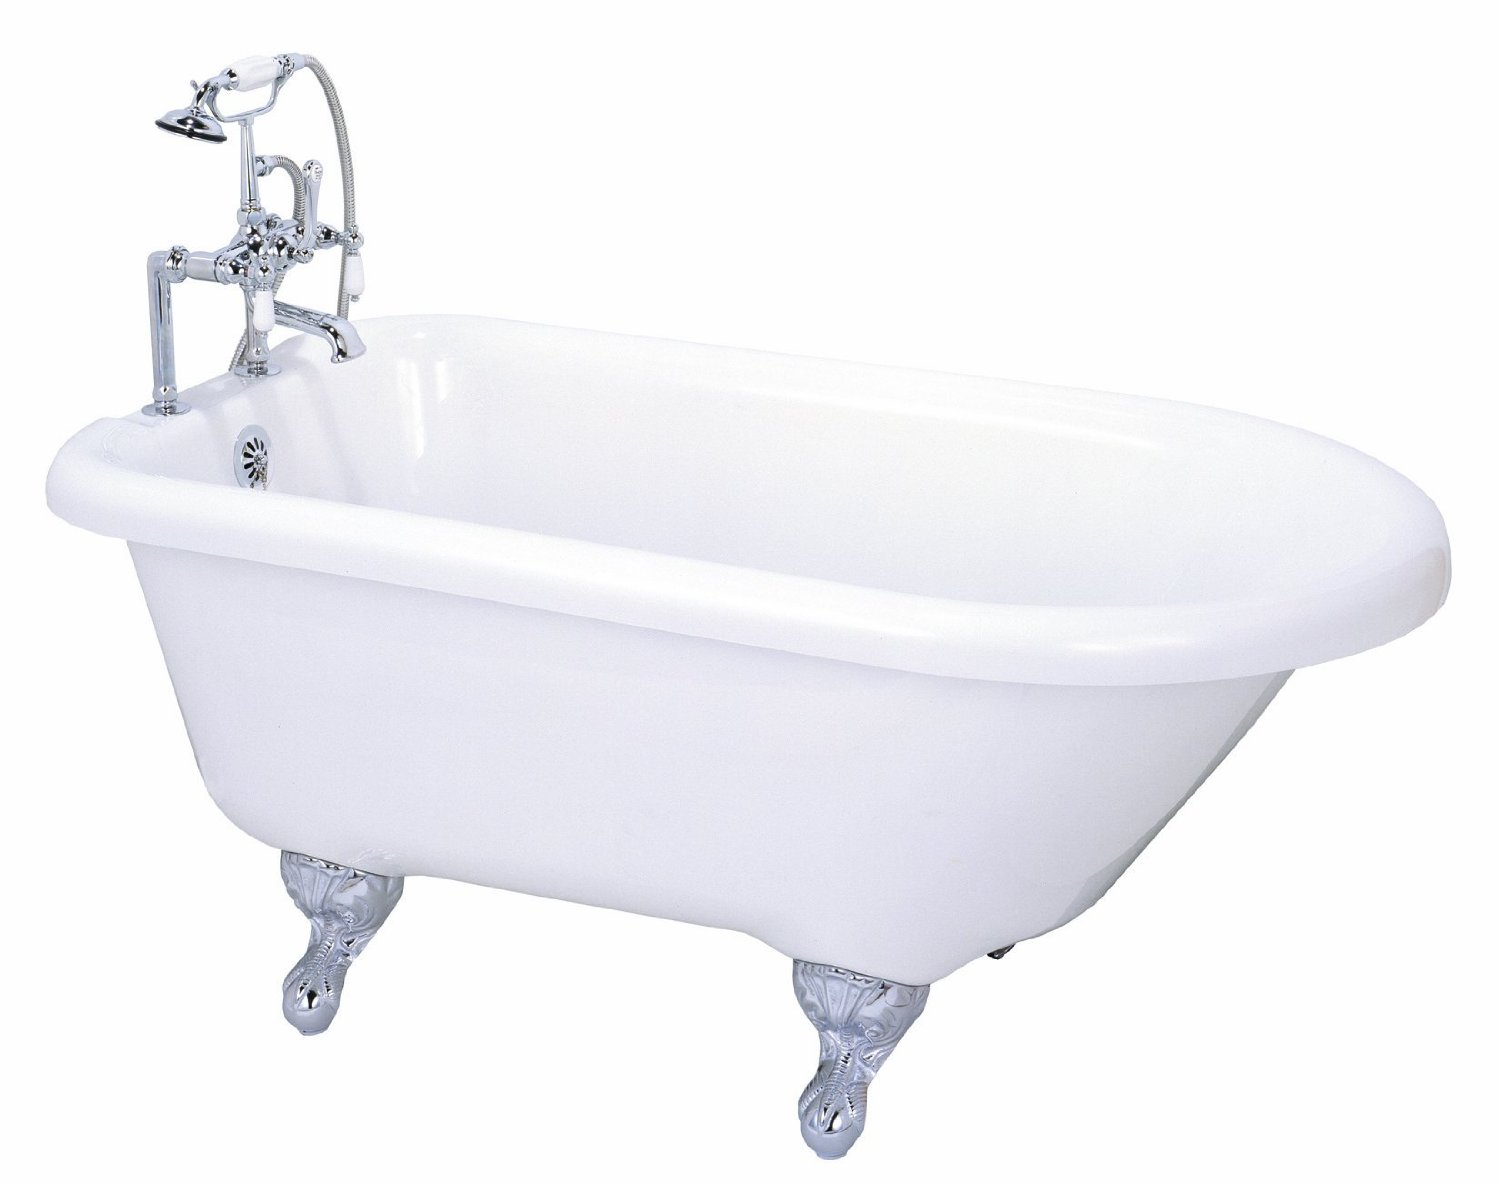 20 Best Small Bathtubs To Buy In 2016